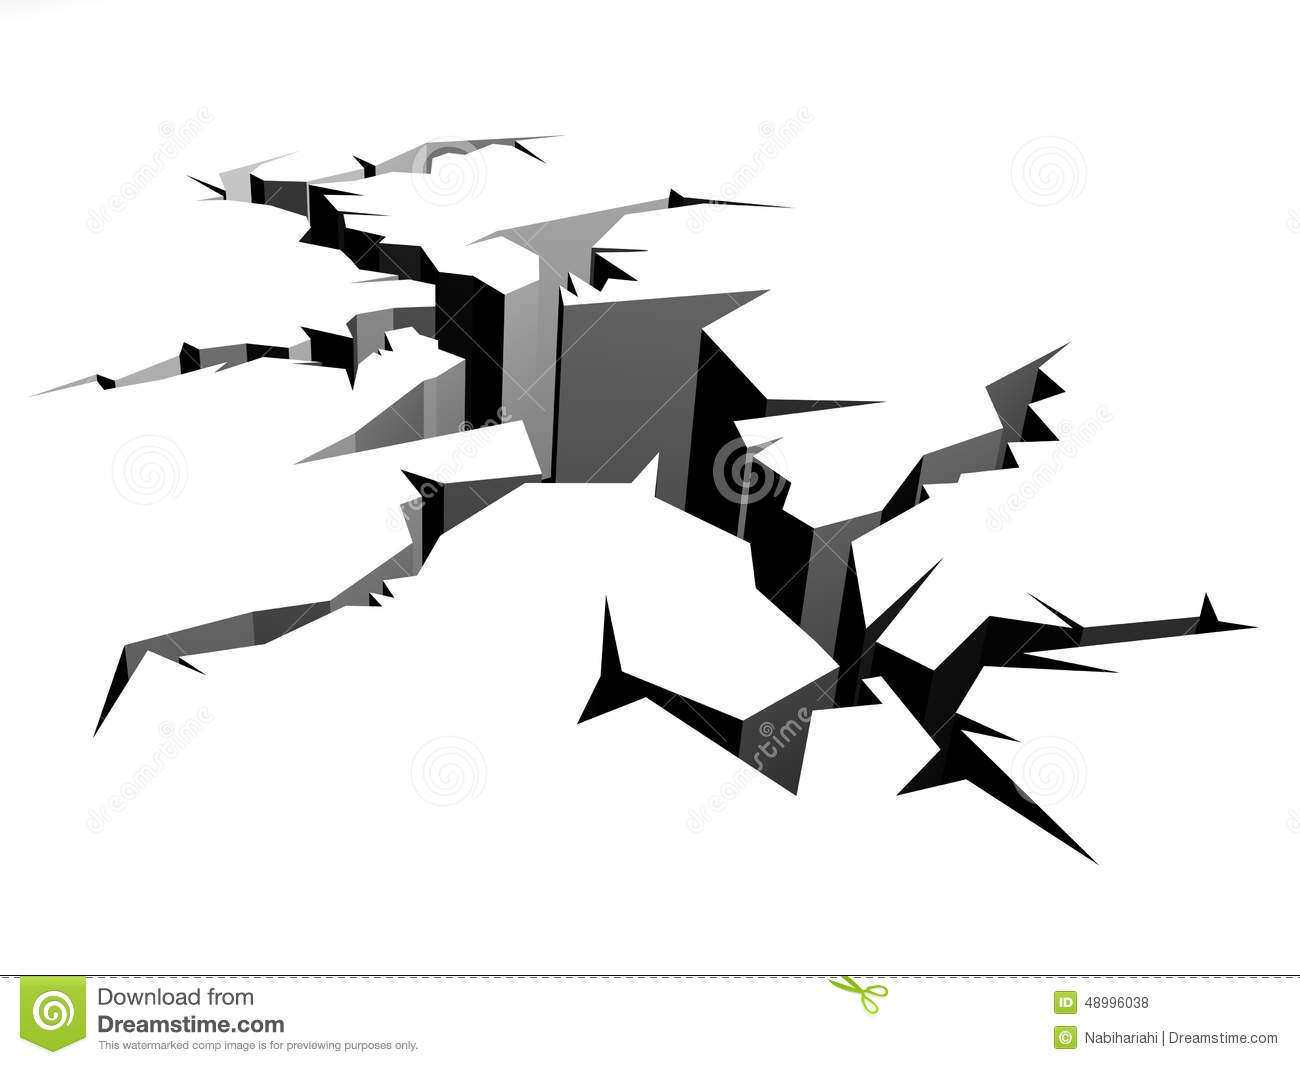 Earthquake Stock Illustration - Image: 48996038